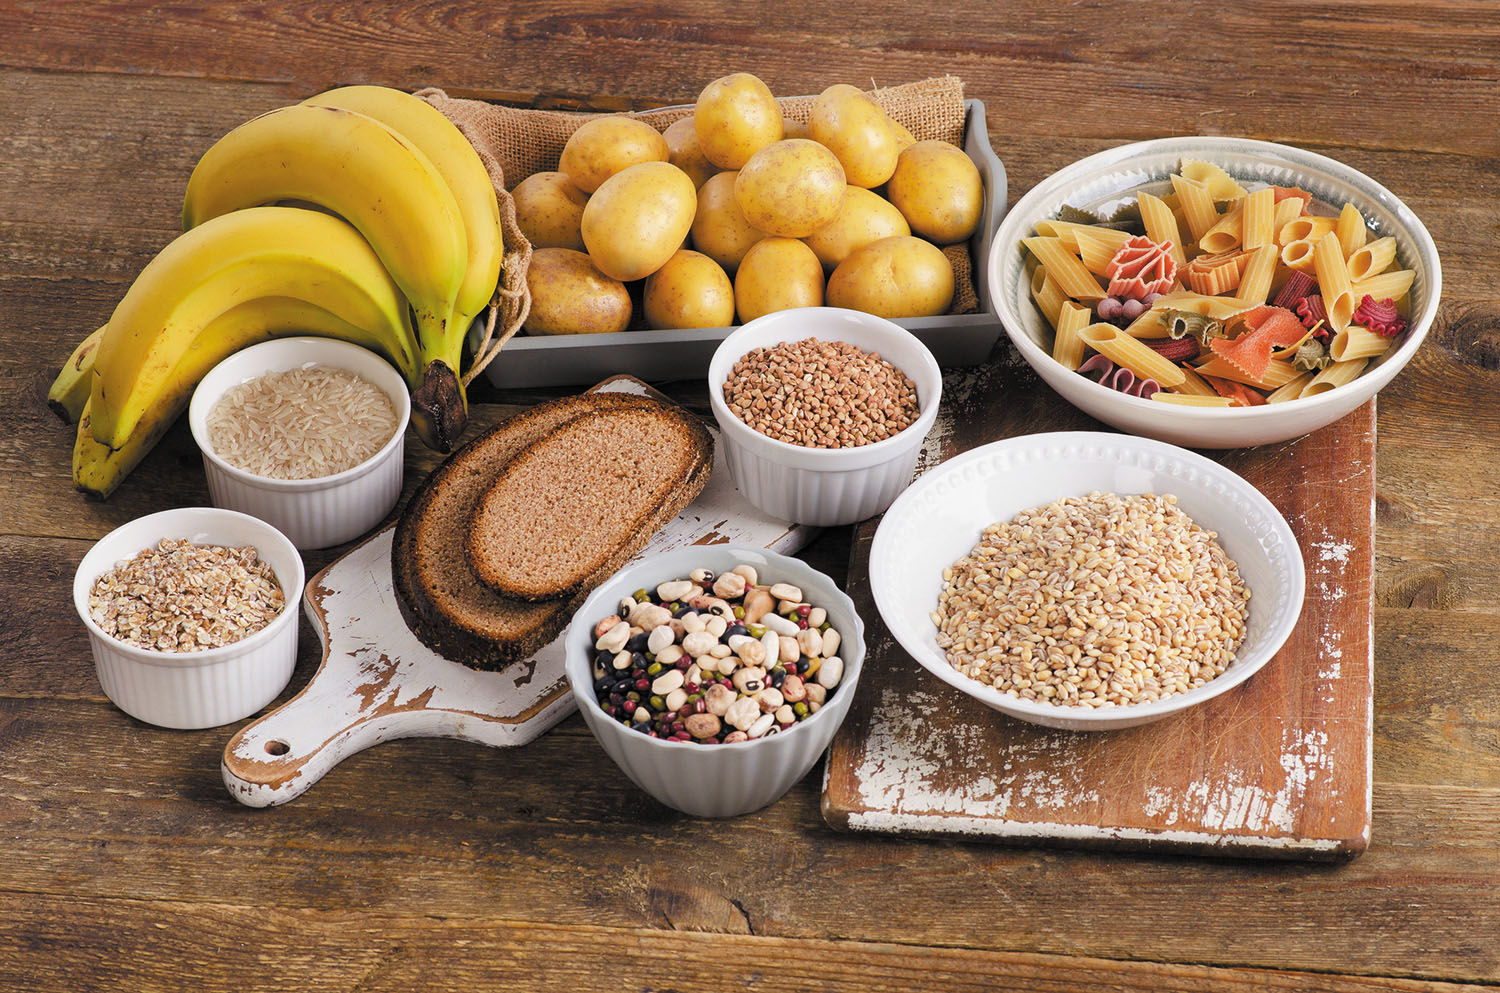 High Calorie Diet Can Slow Down Brain Functioning, Says Study